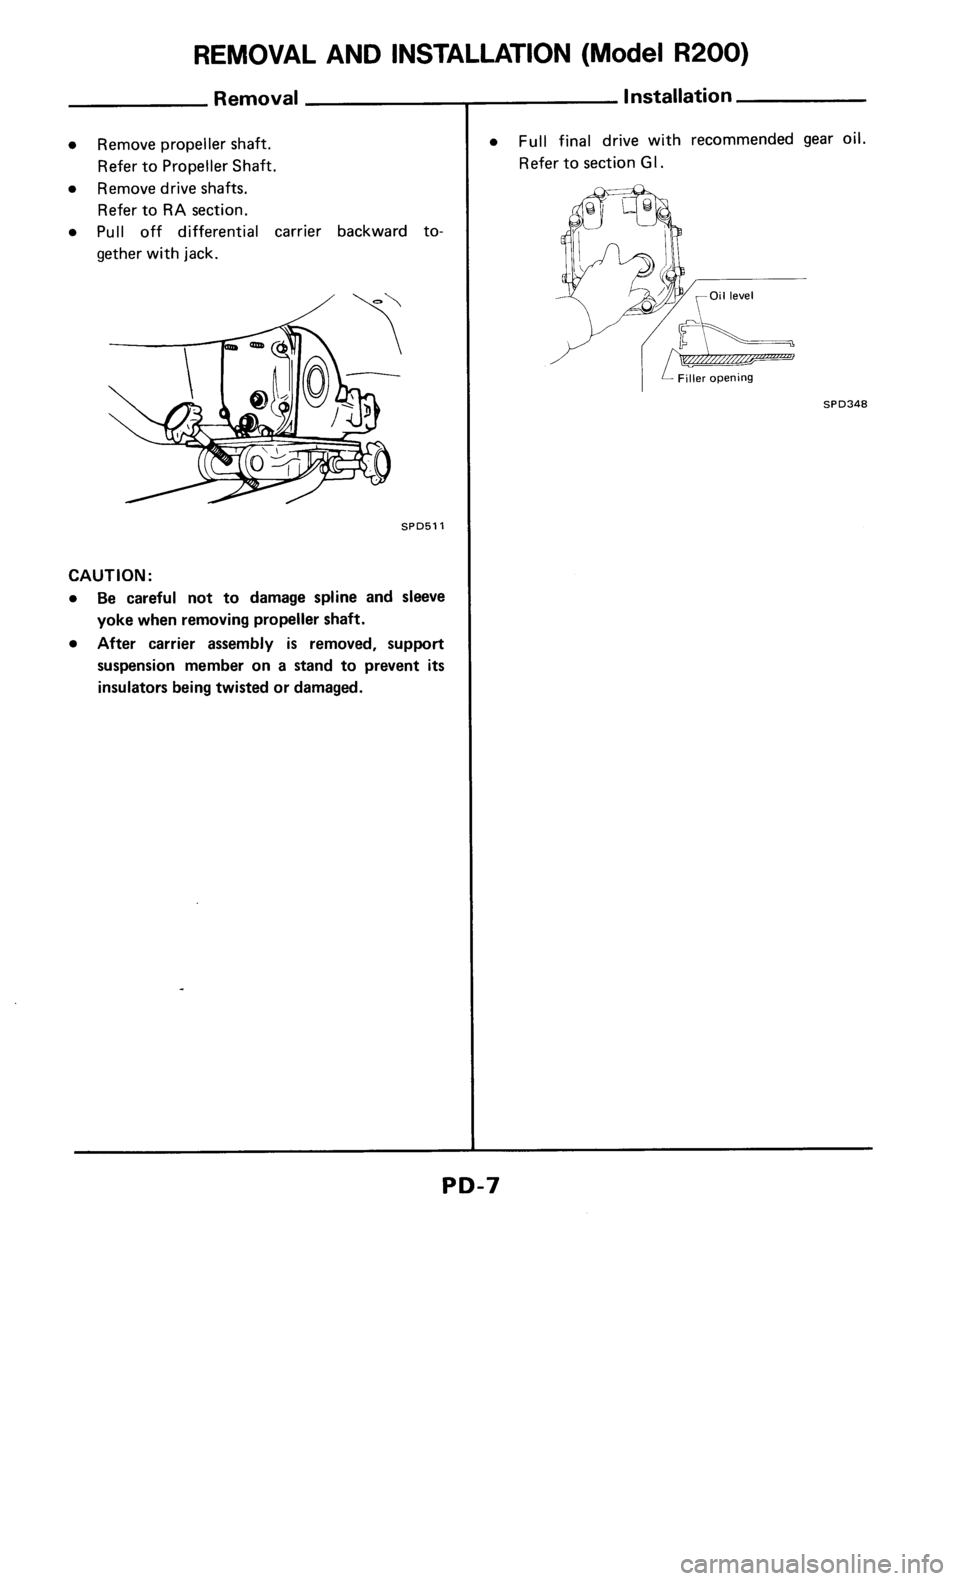 NISSAN 300ZX 1986 Z31 Propeller Shaft And Differential Carrier Workshop Manual, Page 7